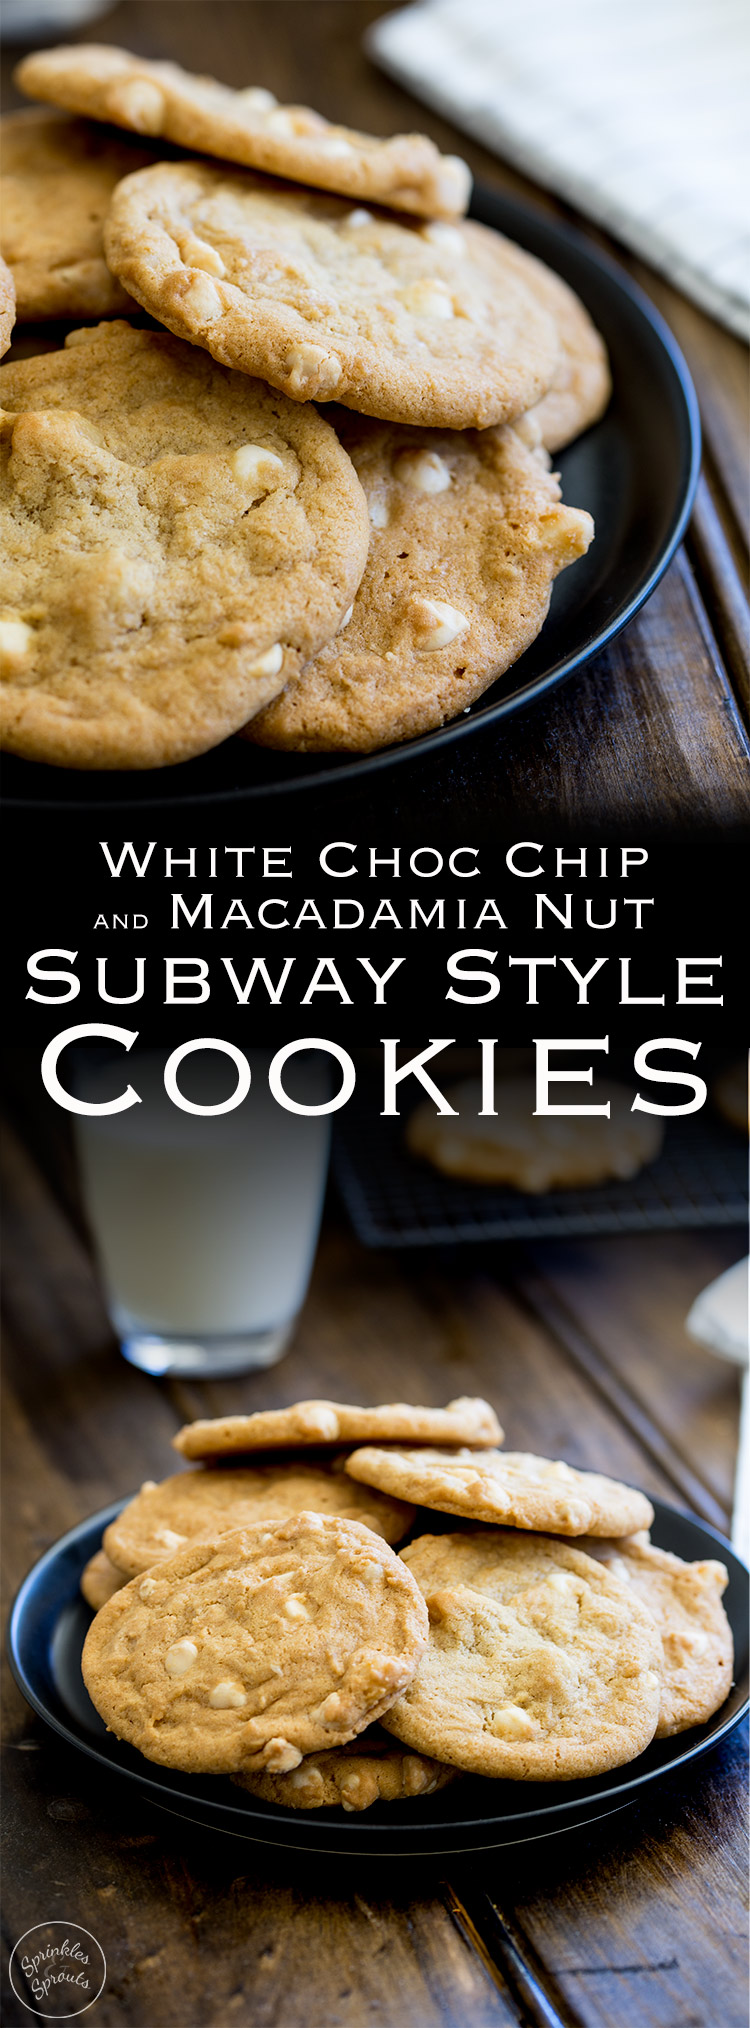 Perfect soft and chewy cookies, packed with white chocolate chips and macadamia nuts, these cookies are just like Subway cookies... but even better as you know exactly what is in them! From https://www.sprinklesandsprouts.com.au